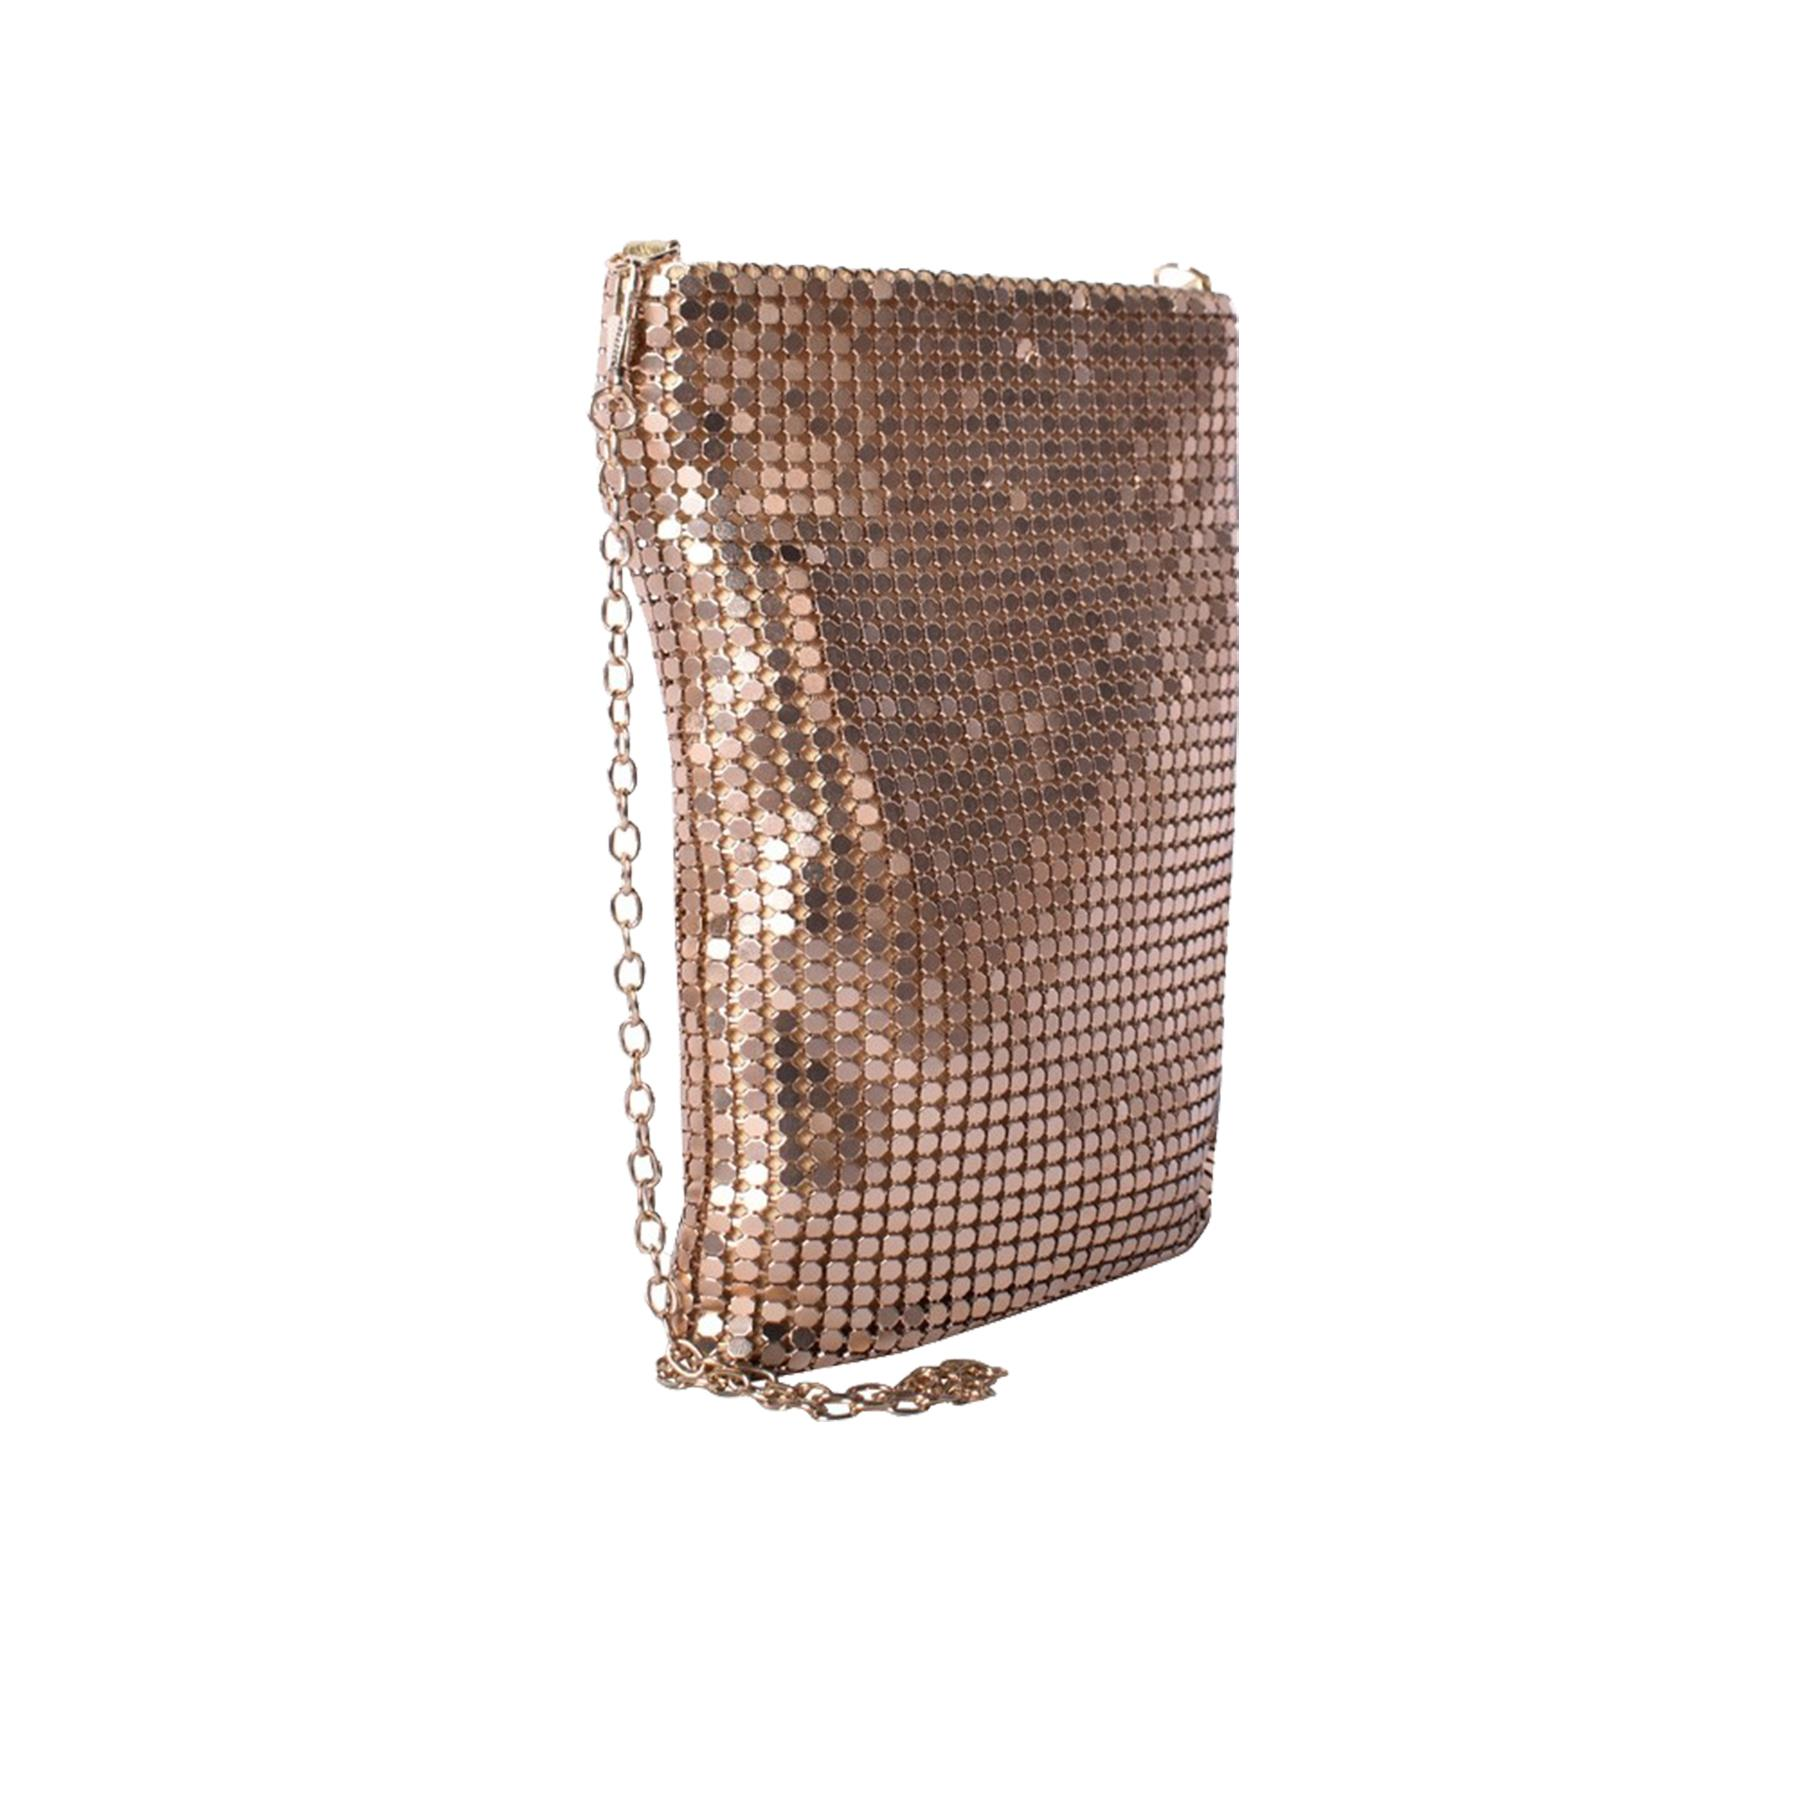 New-Ladies-Chainmail-Faux-Leather-Chain-Strap-Wedding-Clutch-Bag-Pouch thumbnail 15